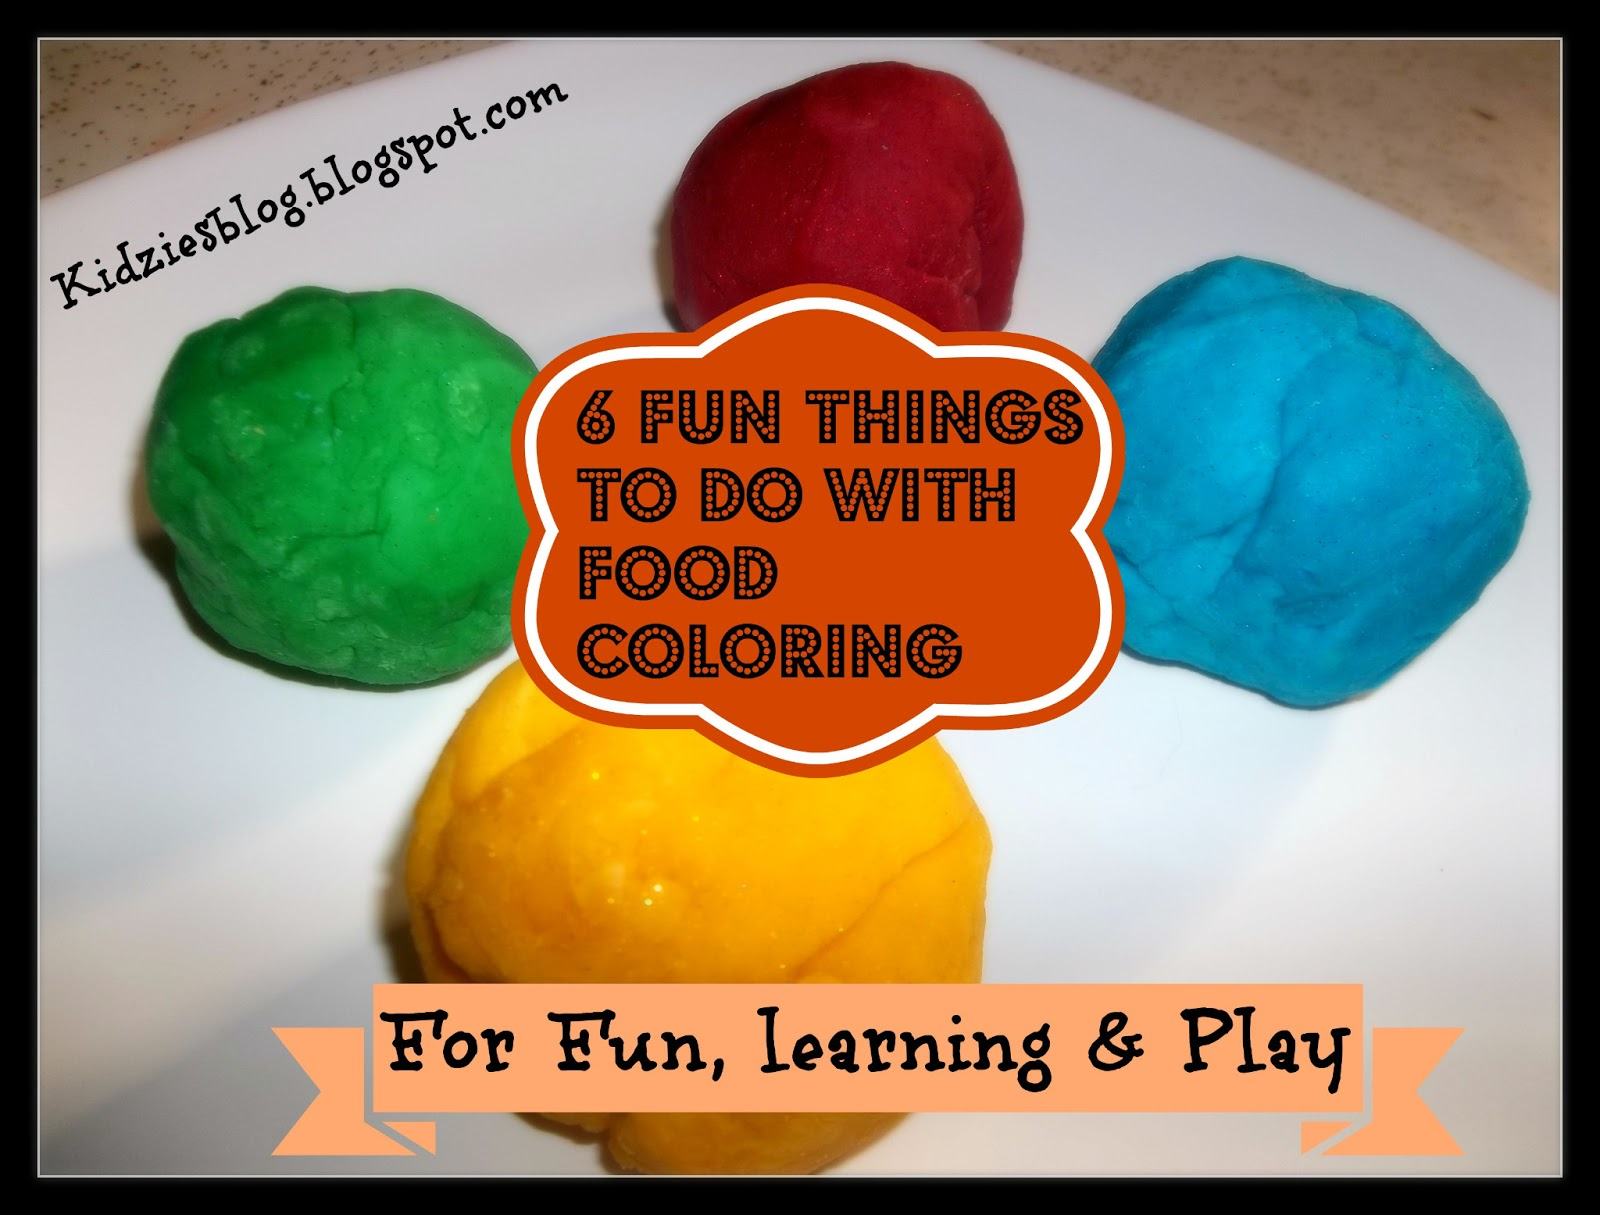 Kidzies : 6 Fun Things To Do With Food Coloring